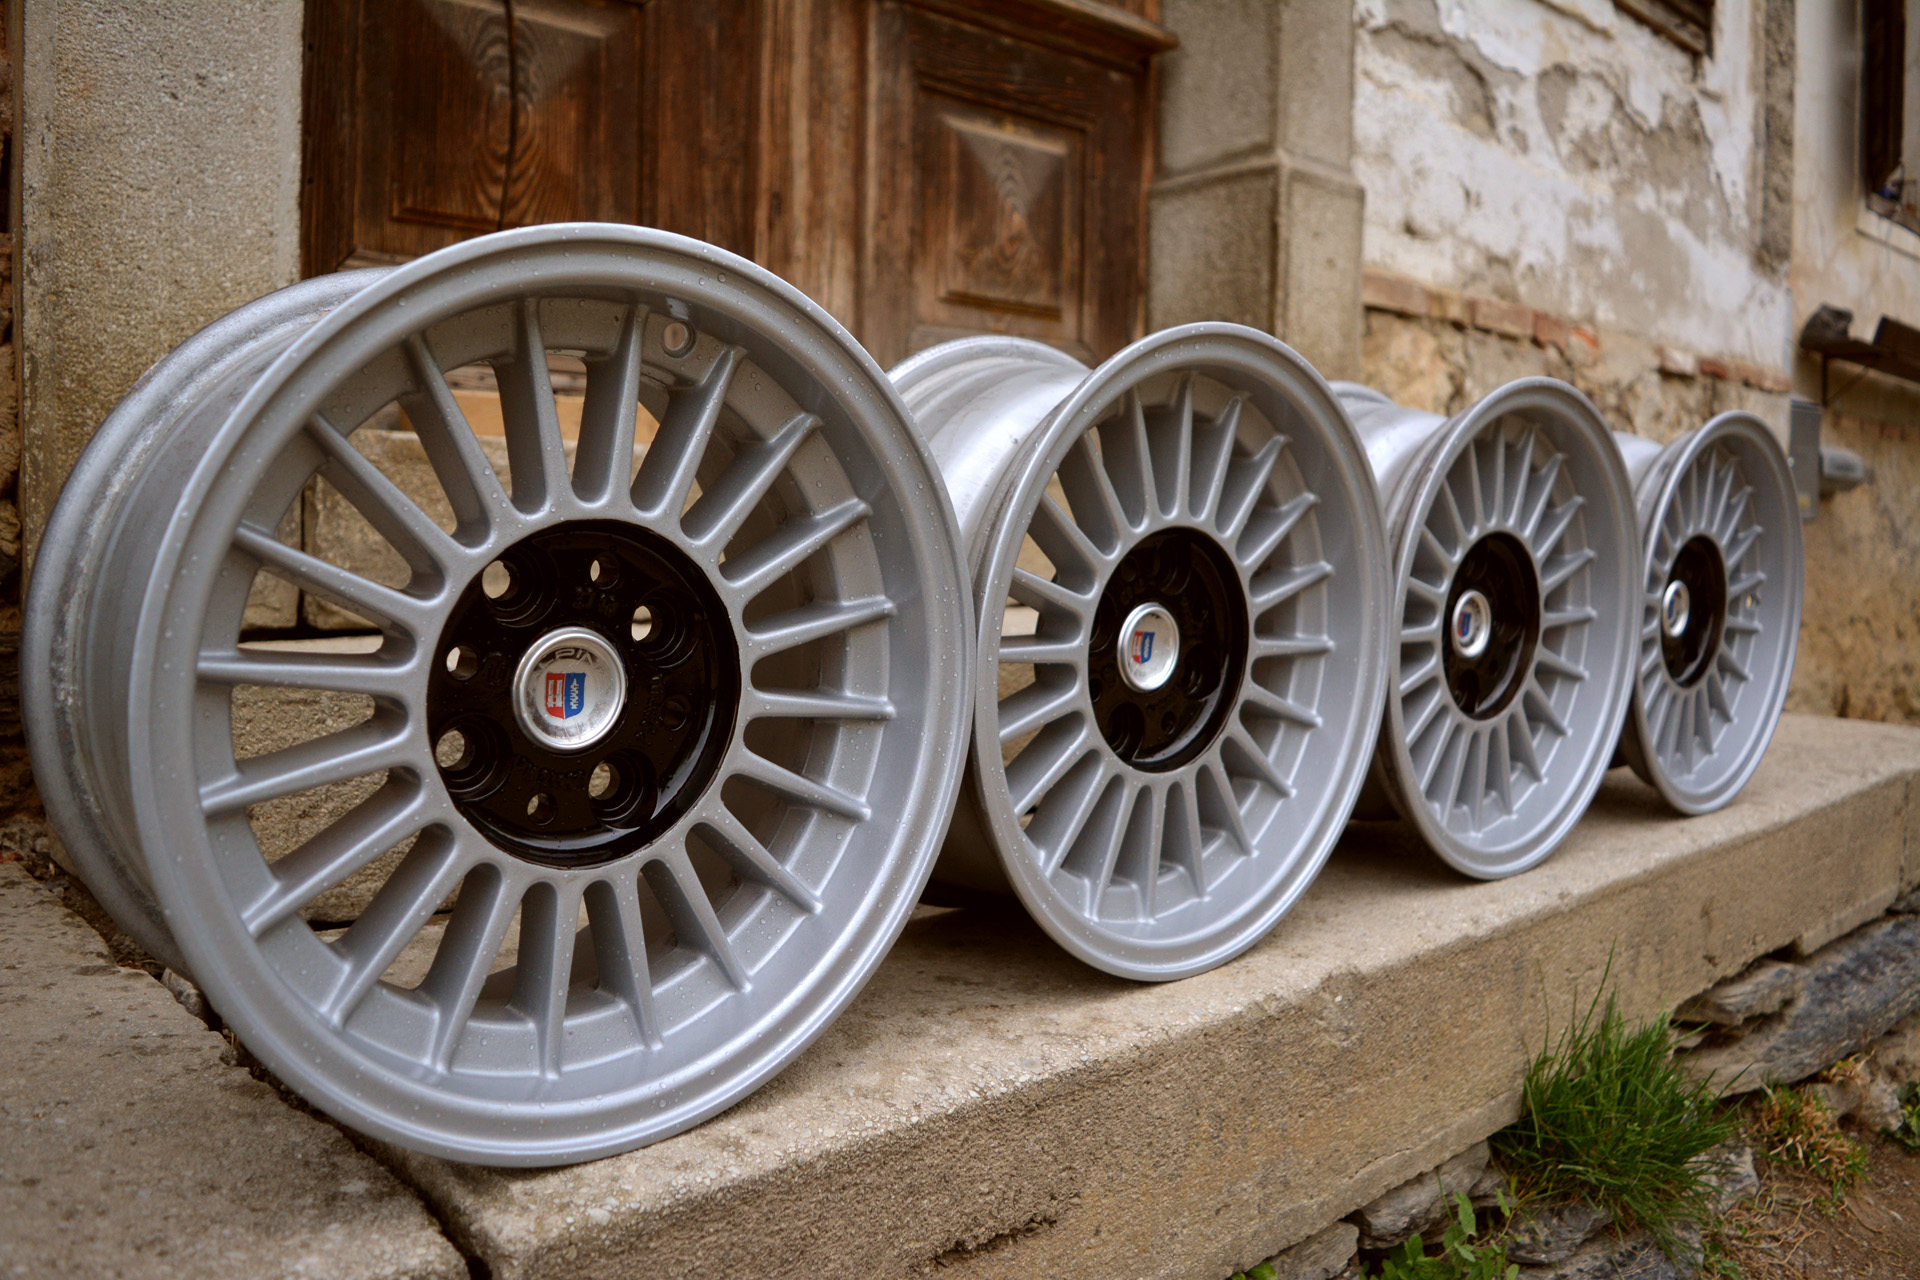 RG B Jx Et Alpina Style BMW Wheels WheelTemplecom - Bmw alpina rims for sale